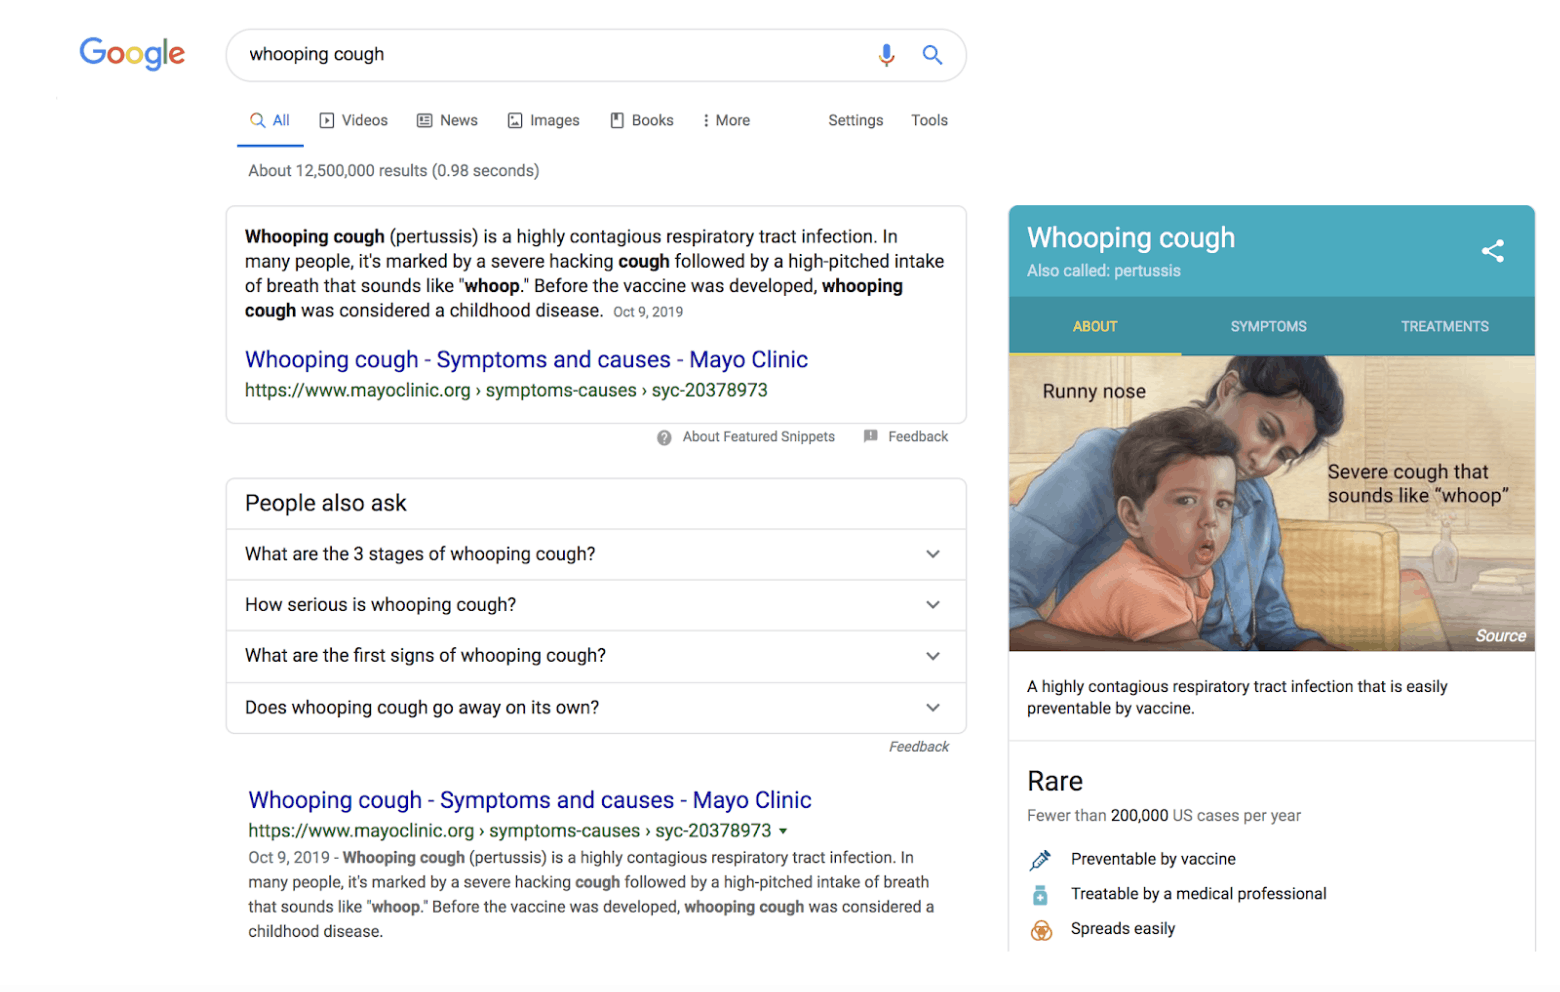 Google Knowledge Panel - Health